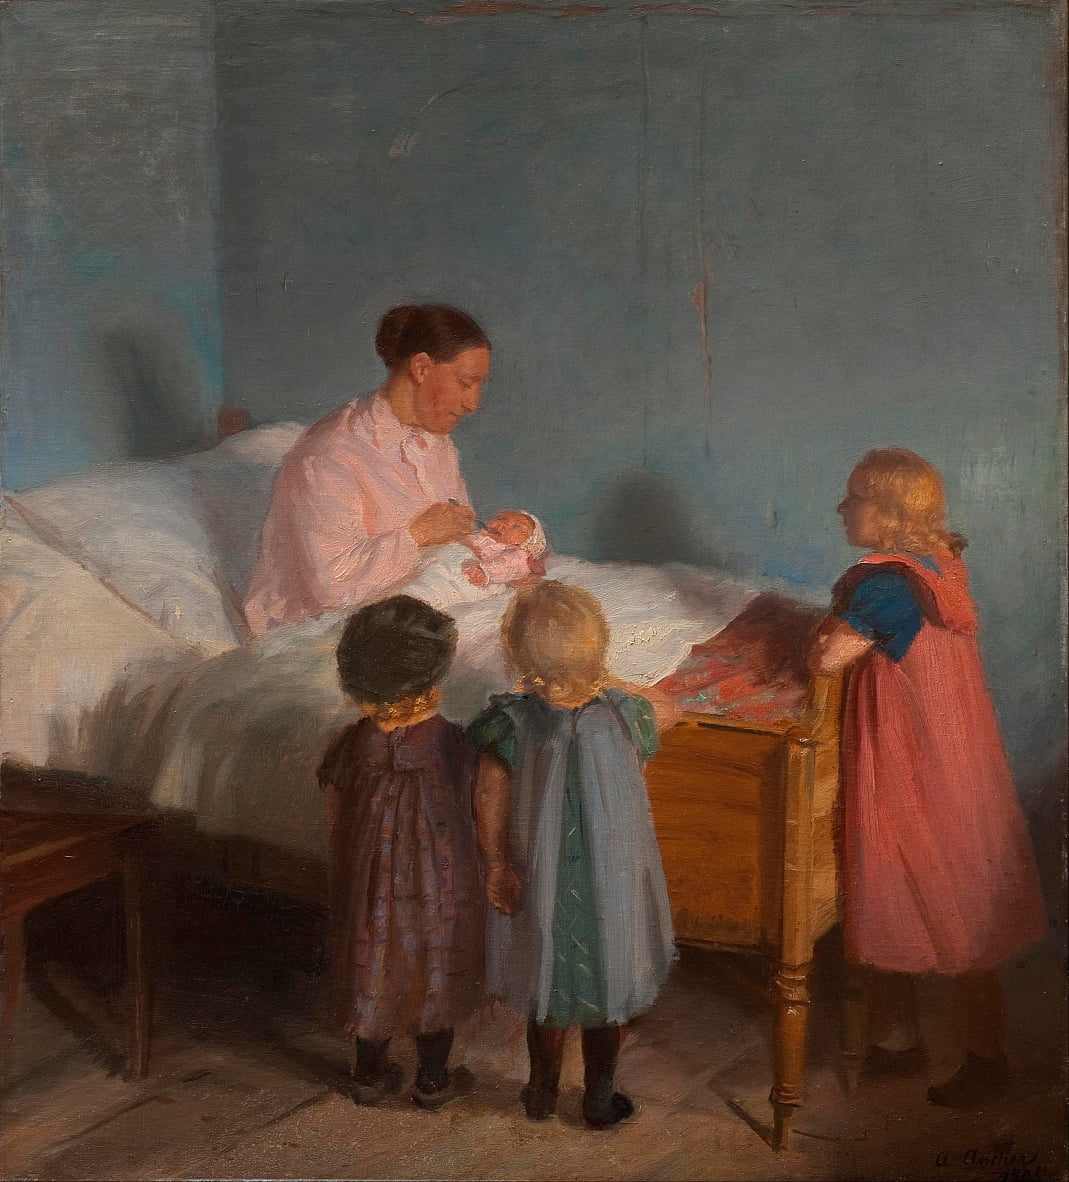 Hermanito de Anna Ancher